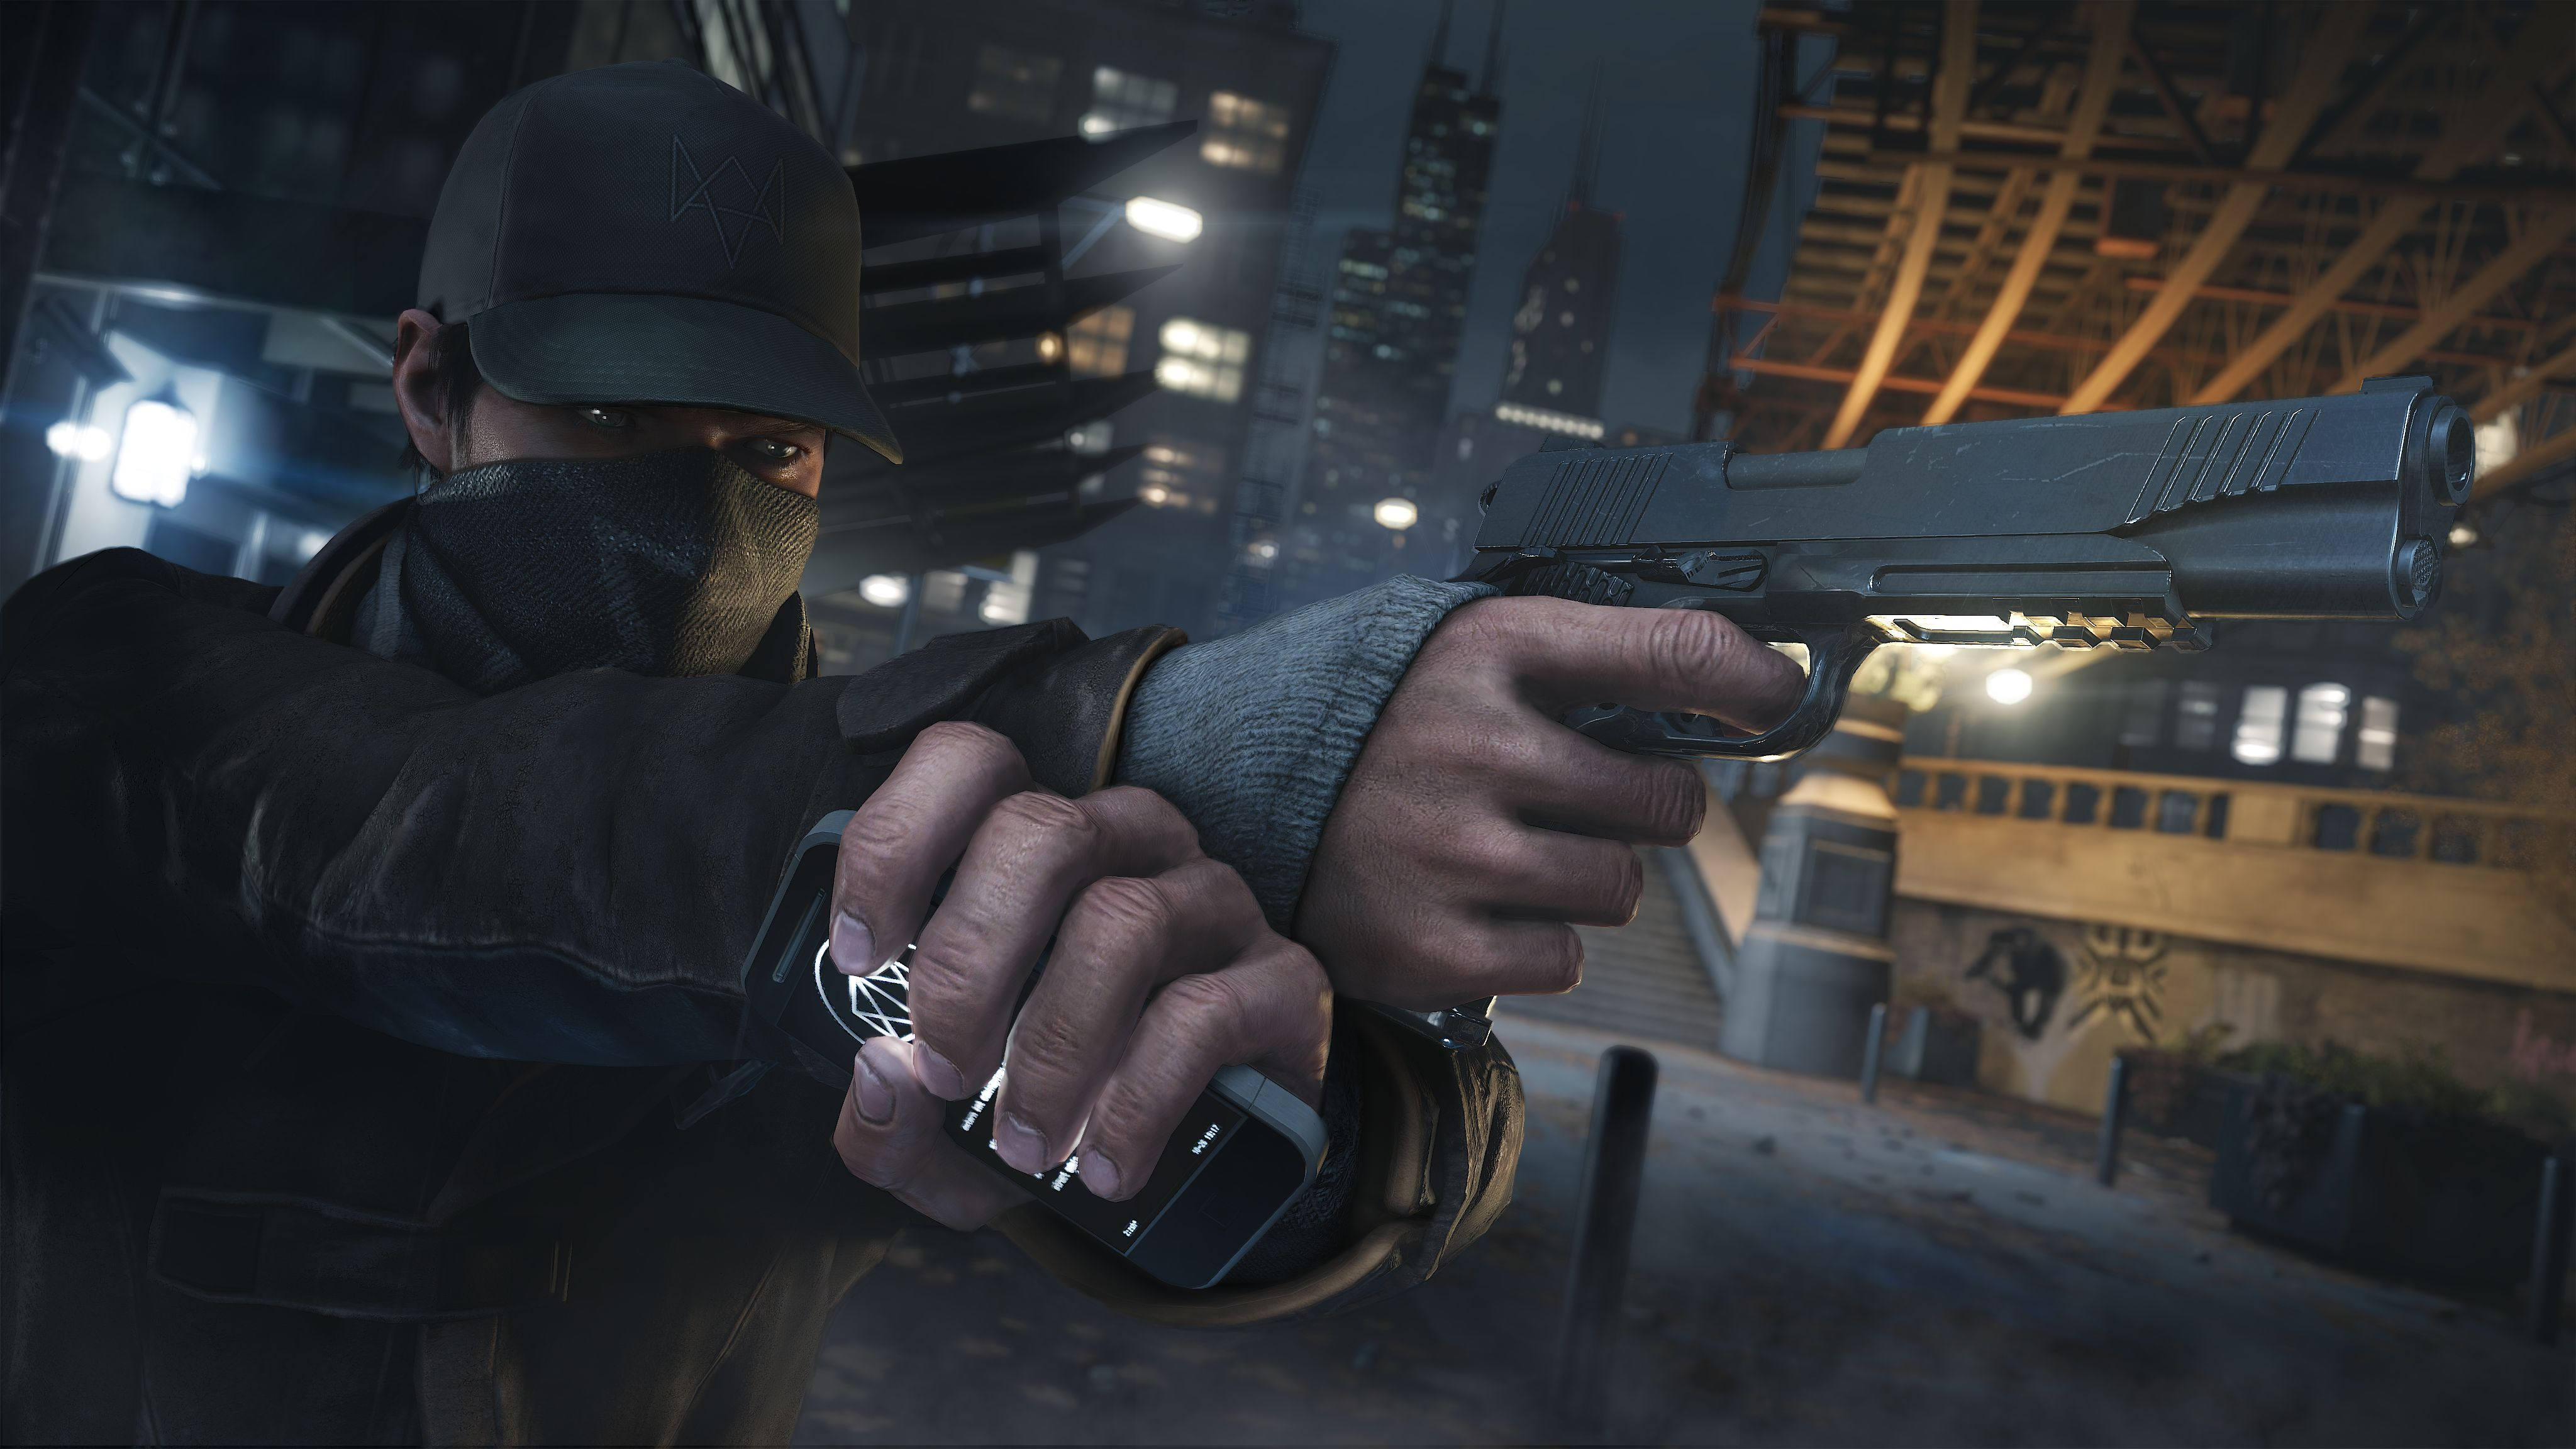 wd-screenshot_e3_two-handed-iconic__130821_10amcet_1377072868